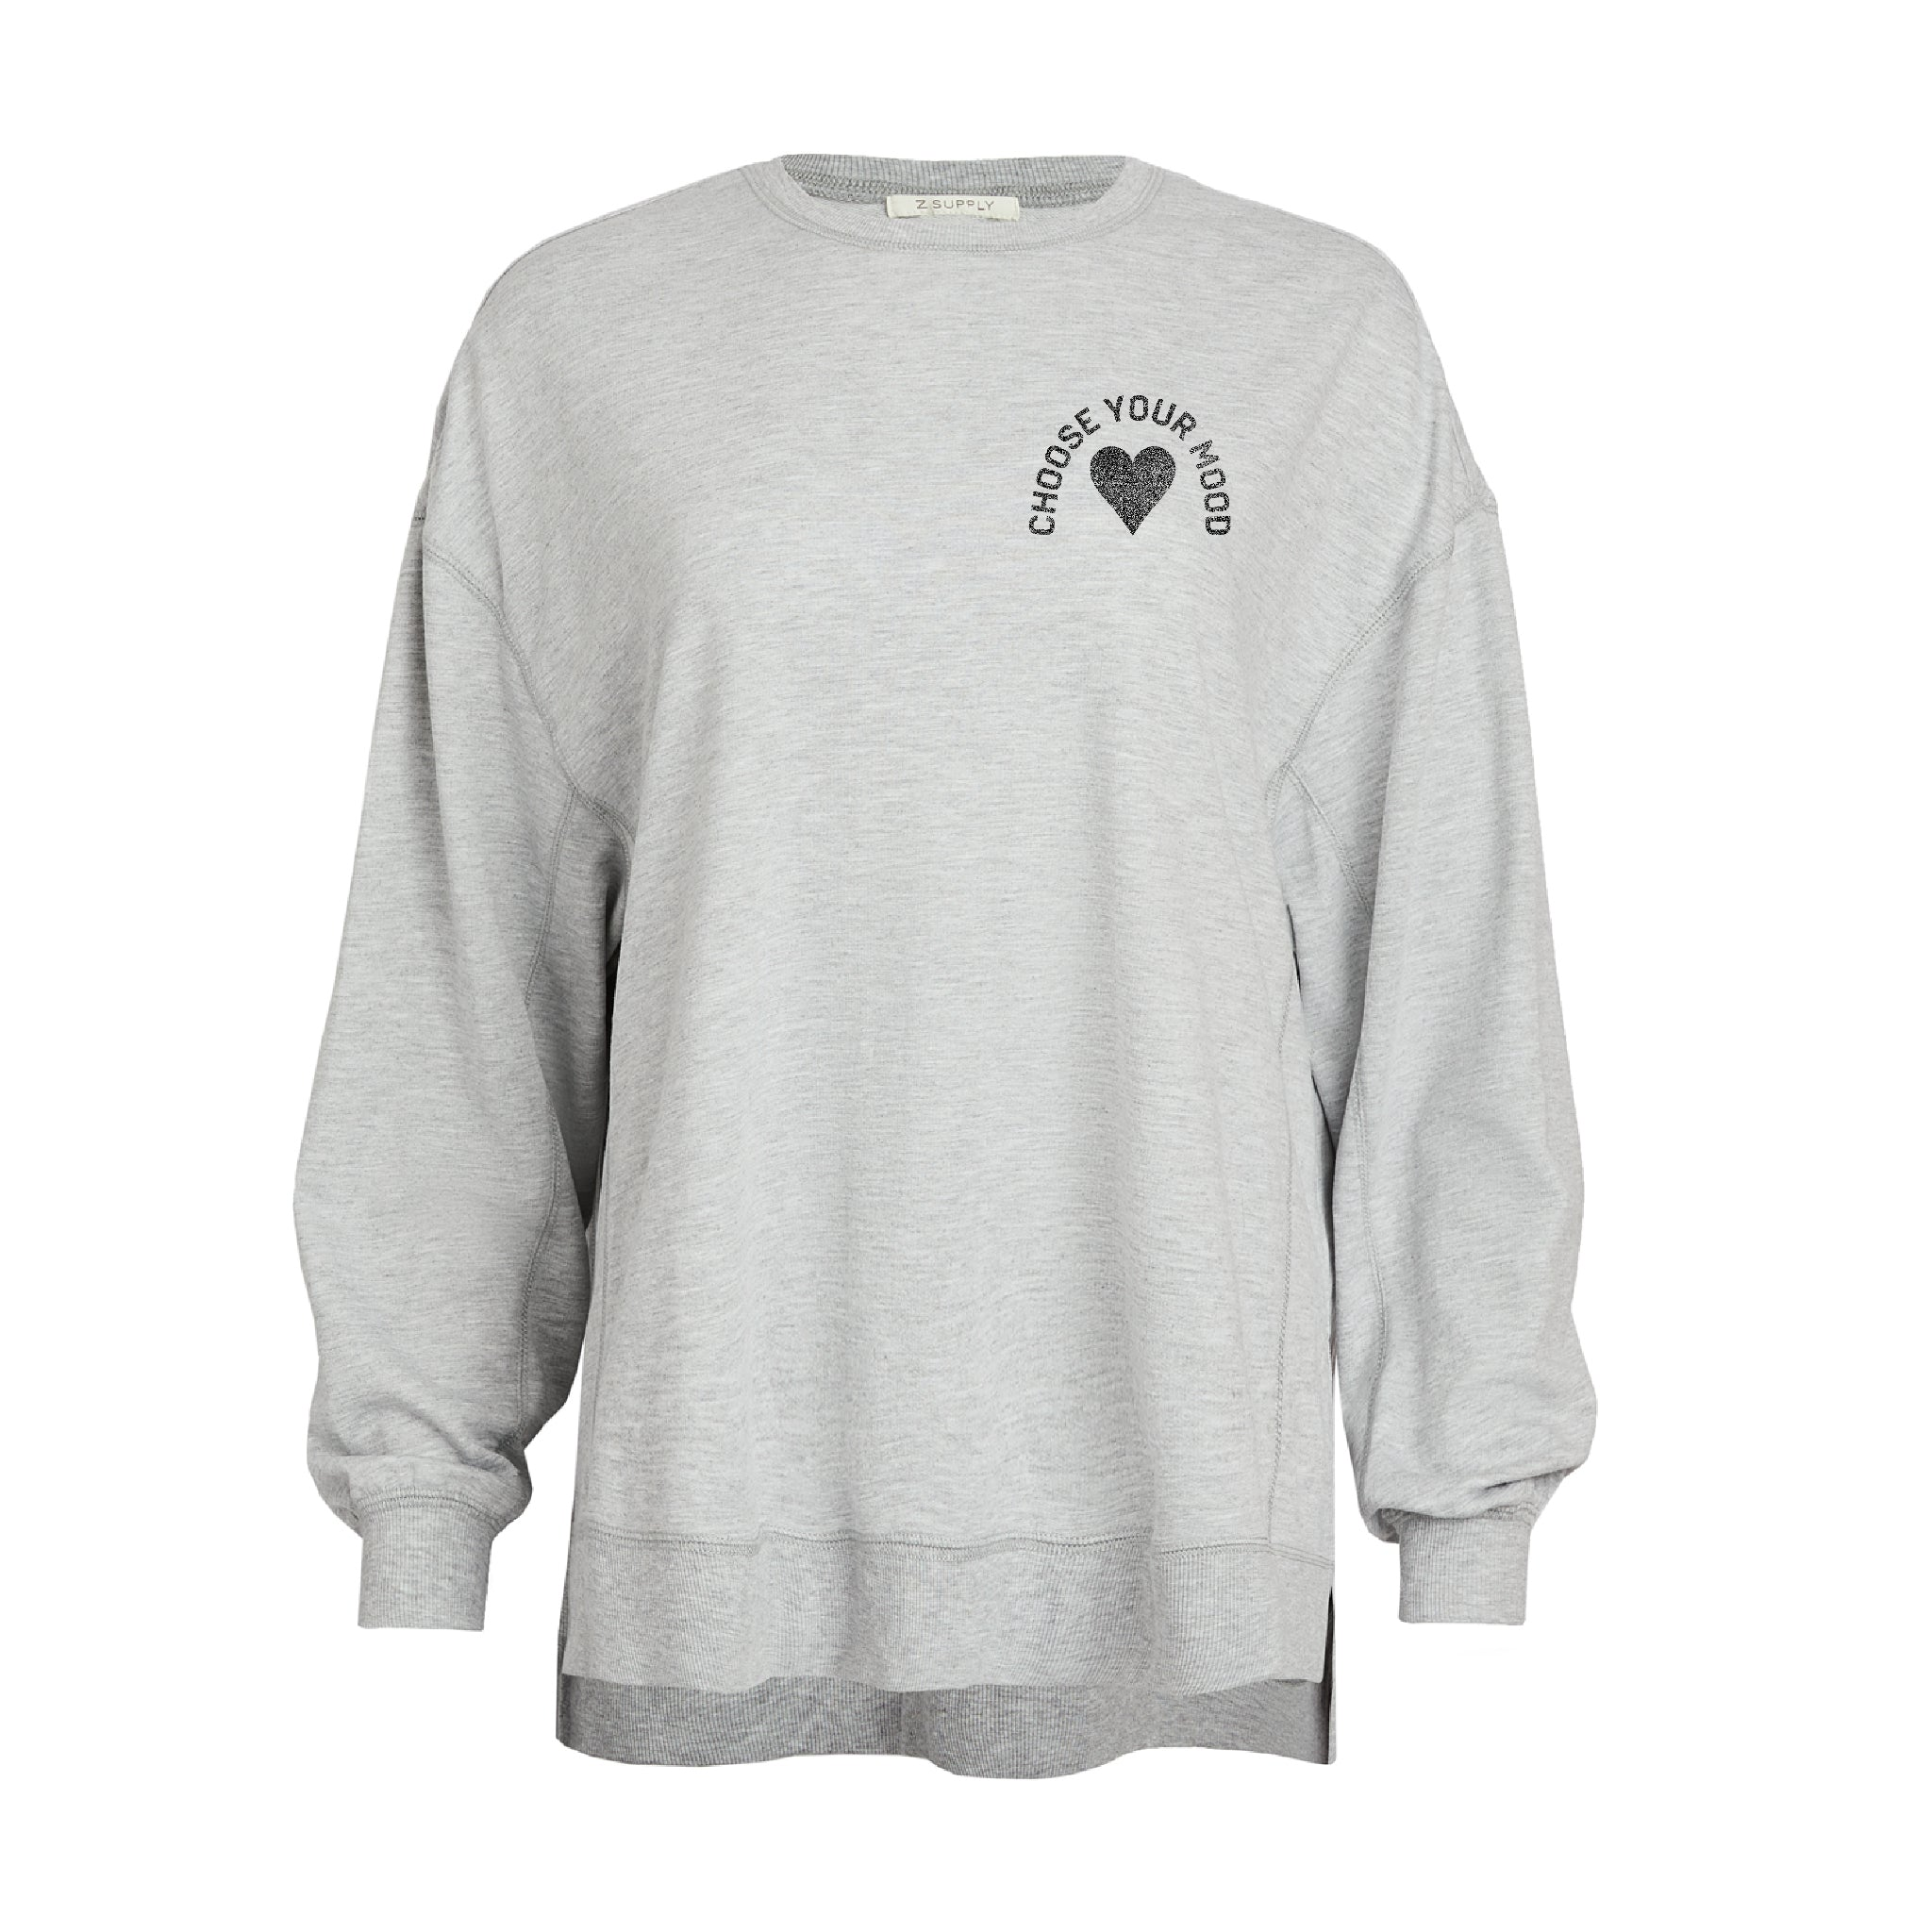 Choose Your Mood Heart French Terry Sweatshirt